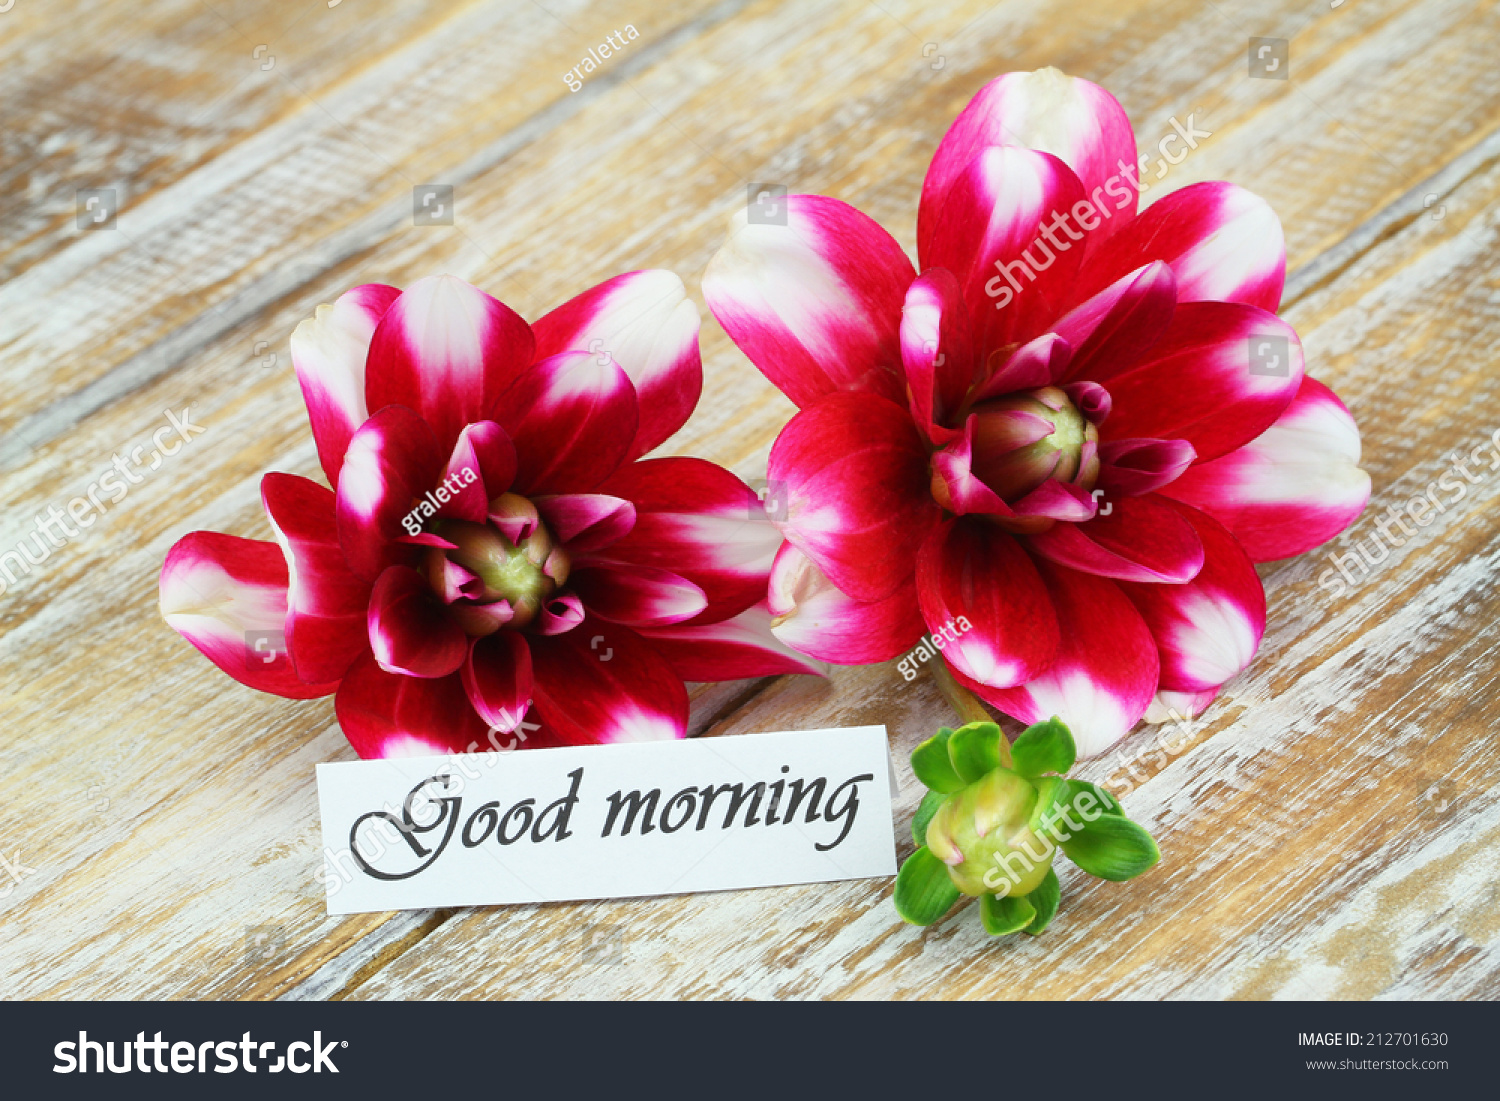 Good morning card dahlia flowers on stock photo edit now 212701630 good morning card with dahlia flowers on wooden surface izmirmasajfo